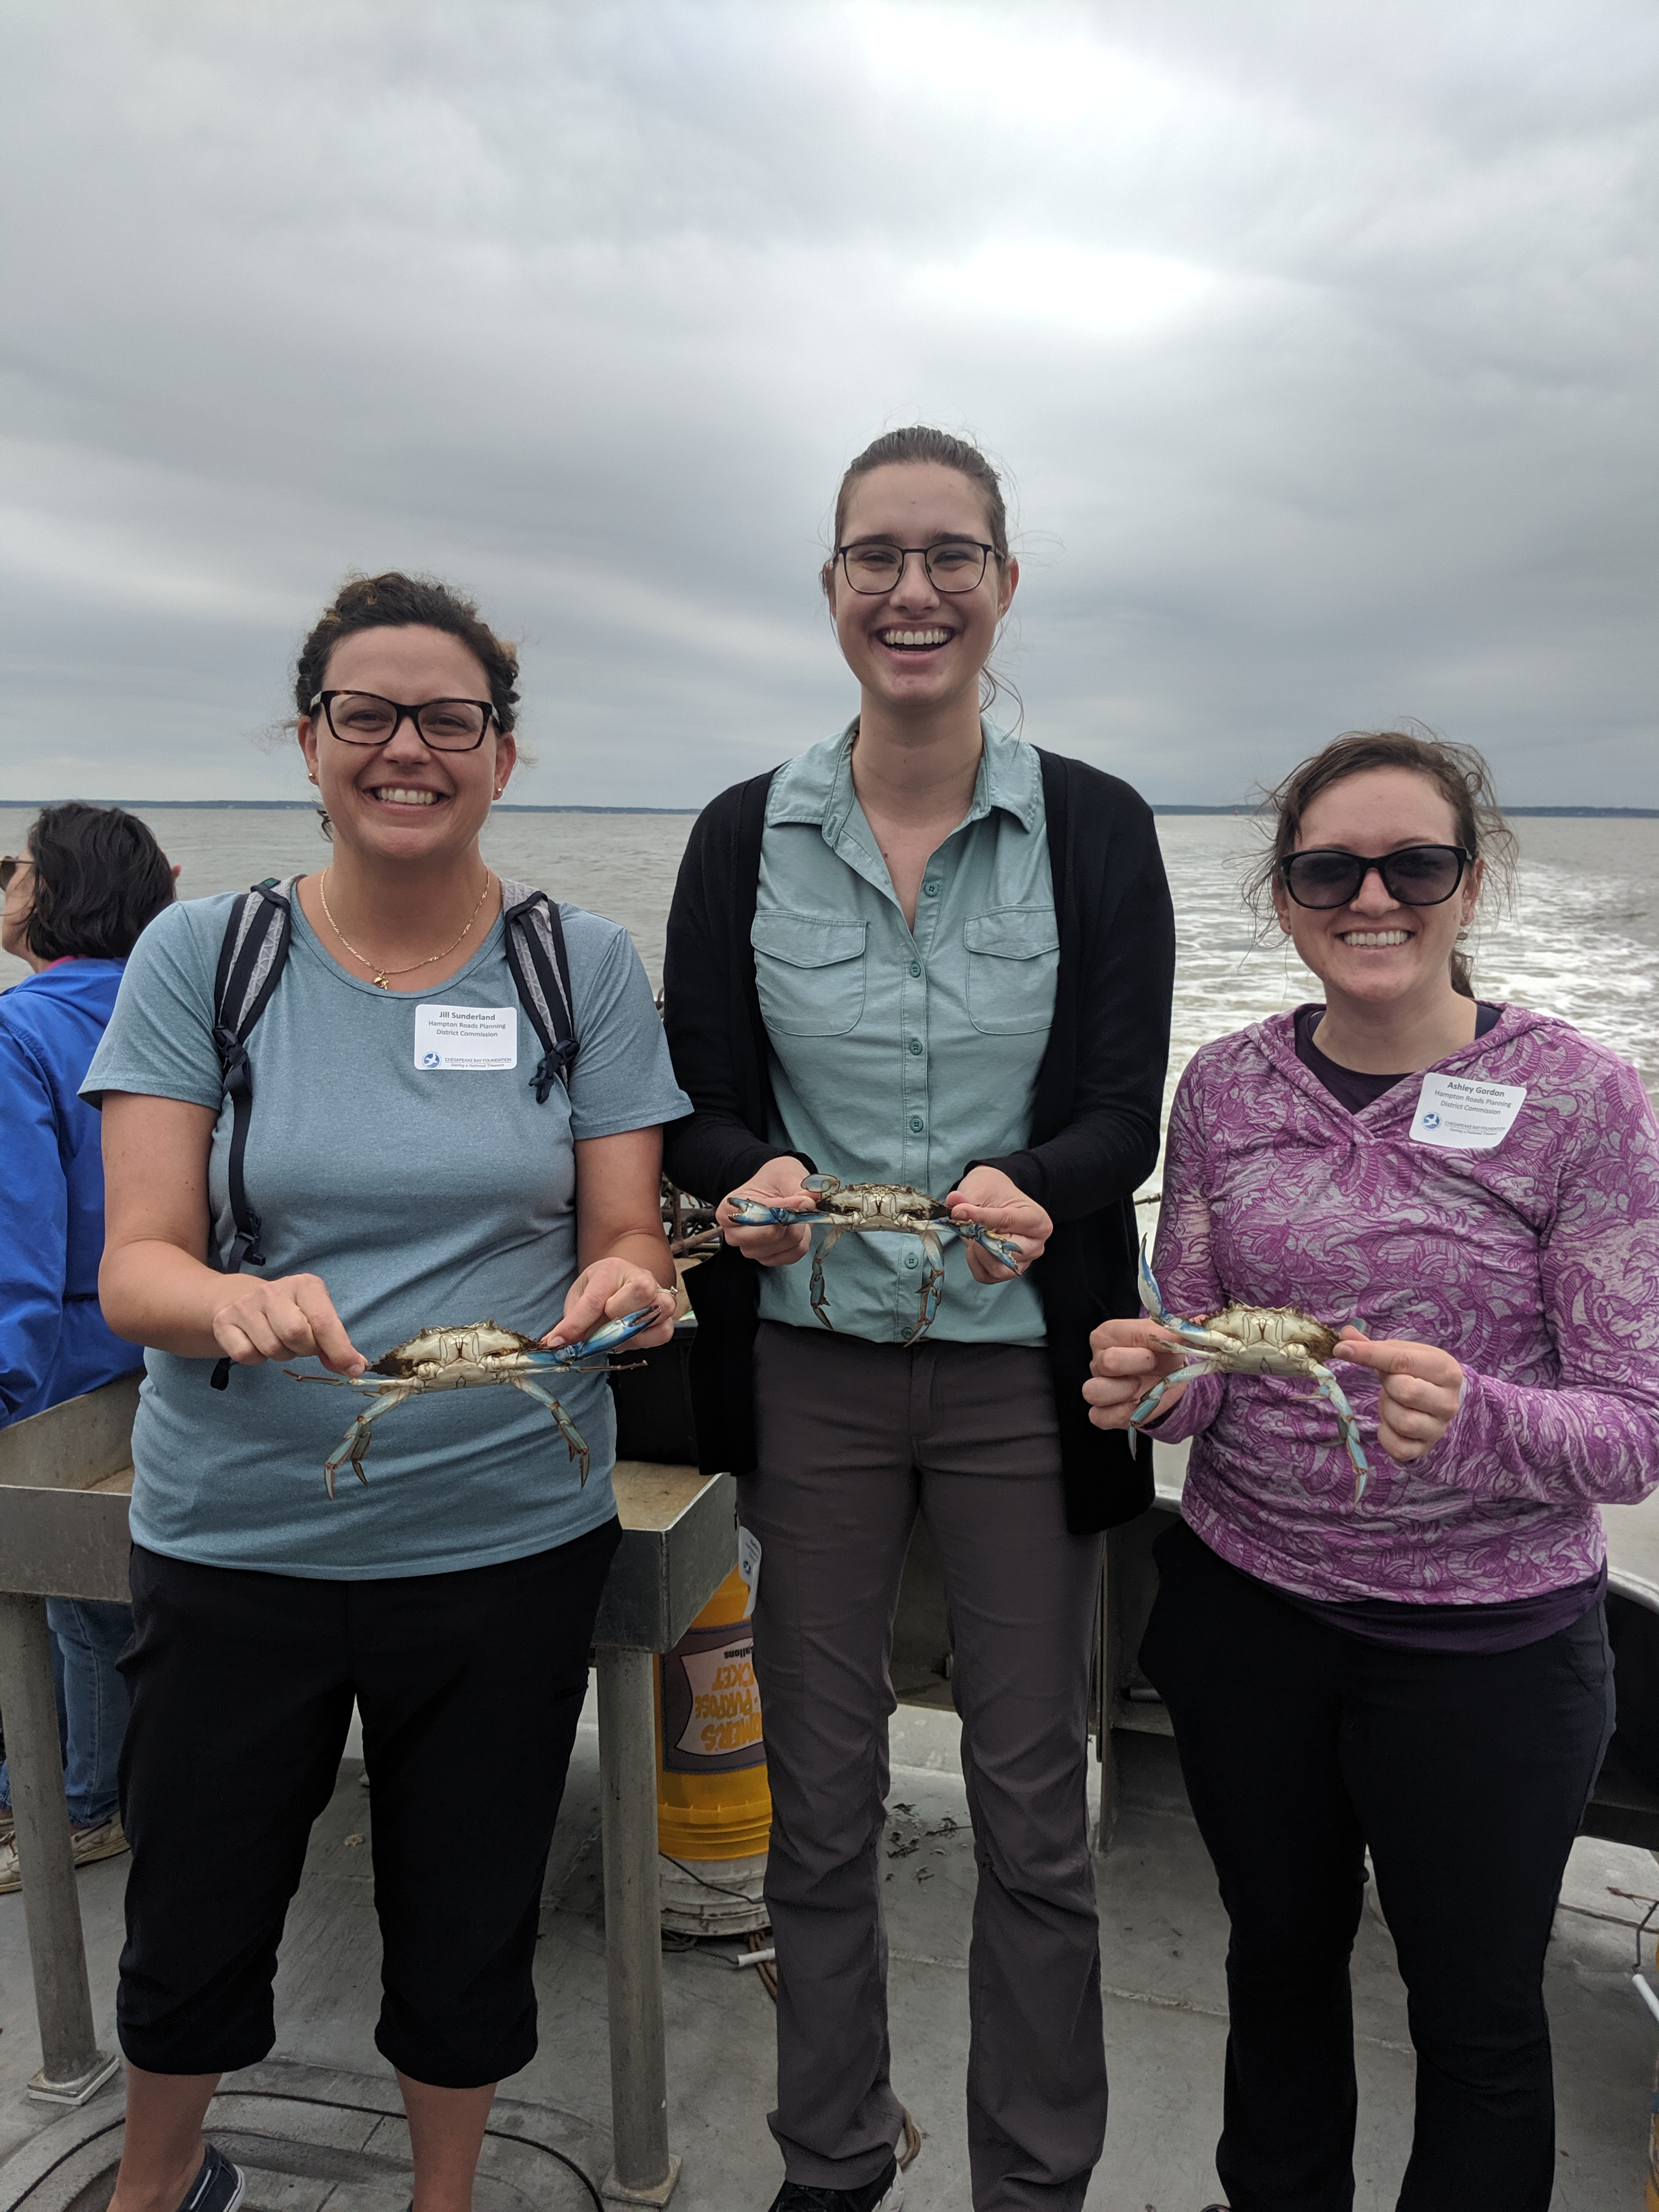 Ms. Jill Sunderland, Ms. Katie Krueger, and Ms. Ashley Gordon, are holding blue crabs.